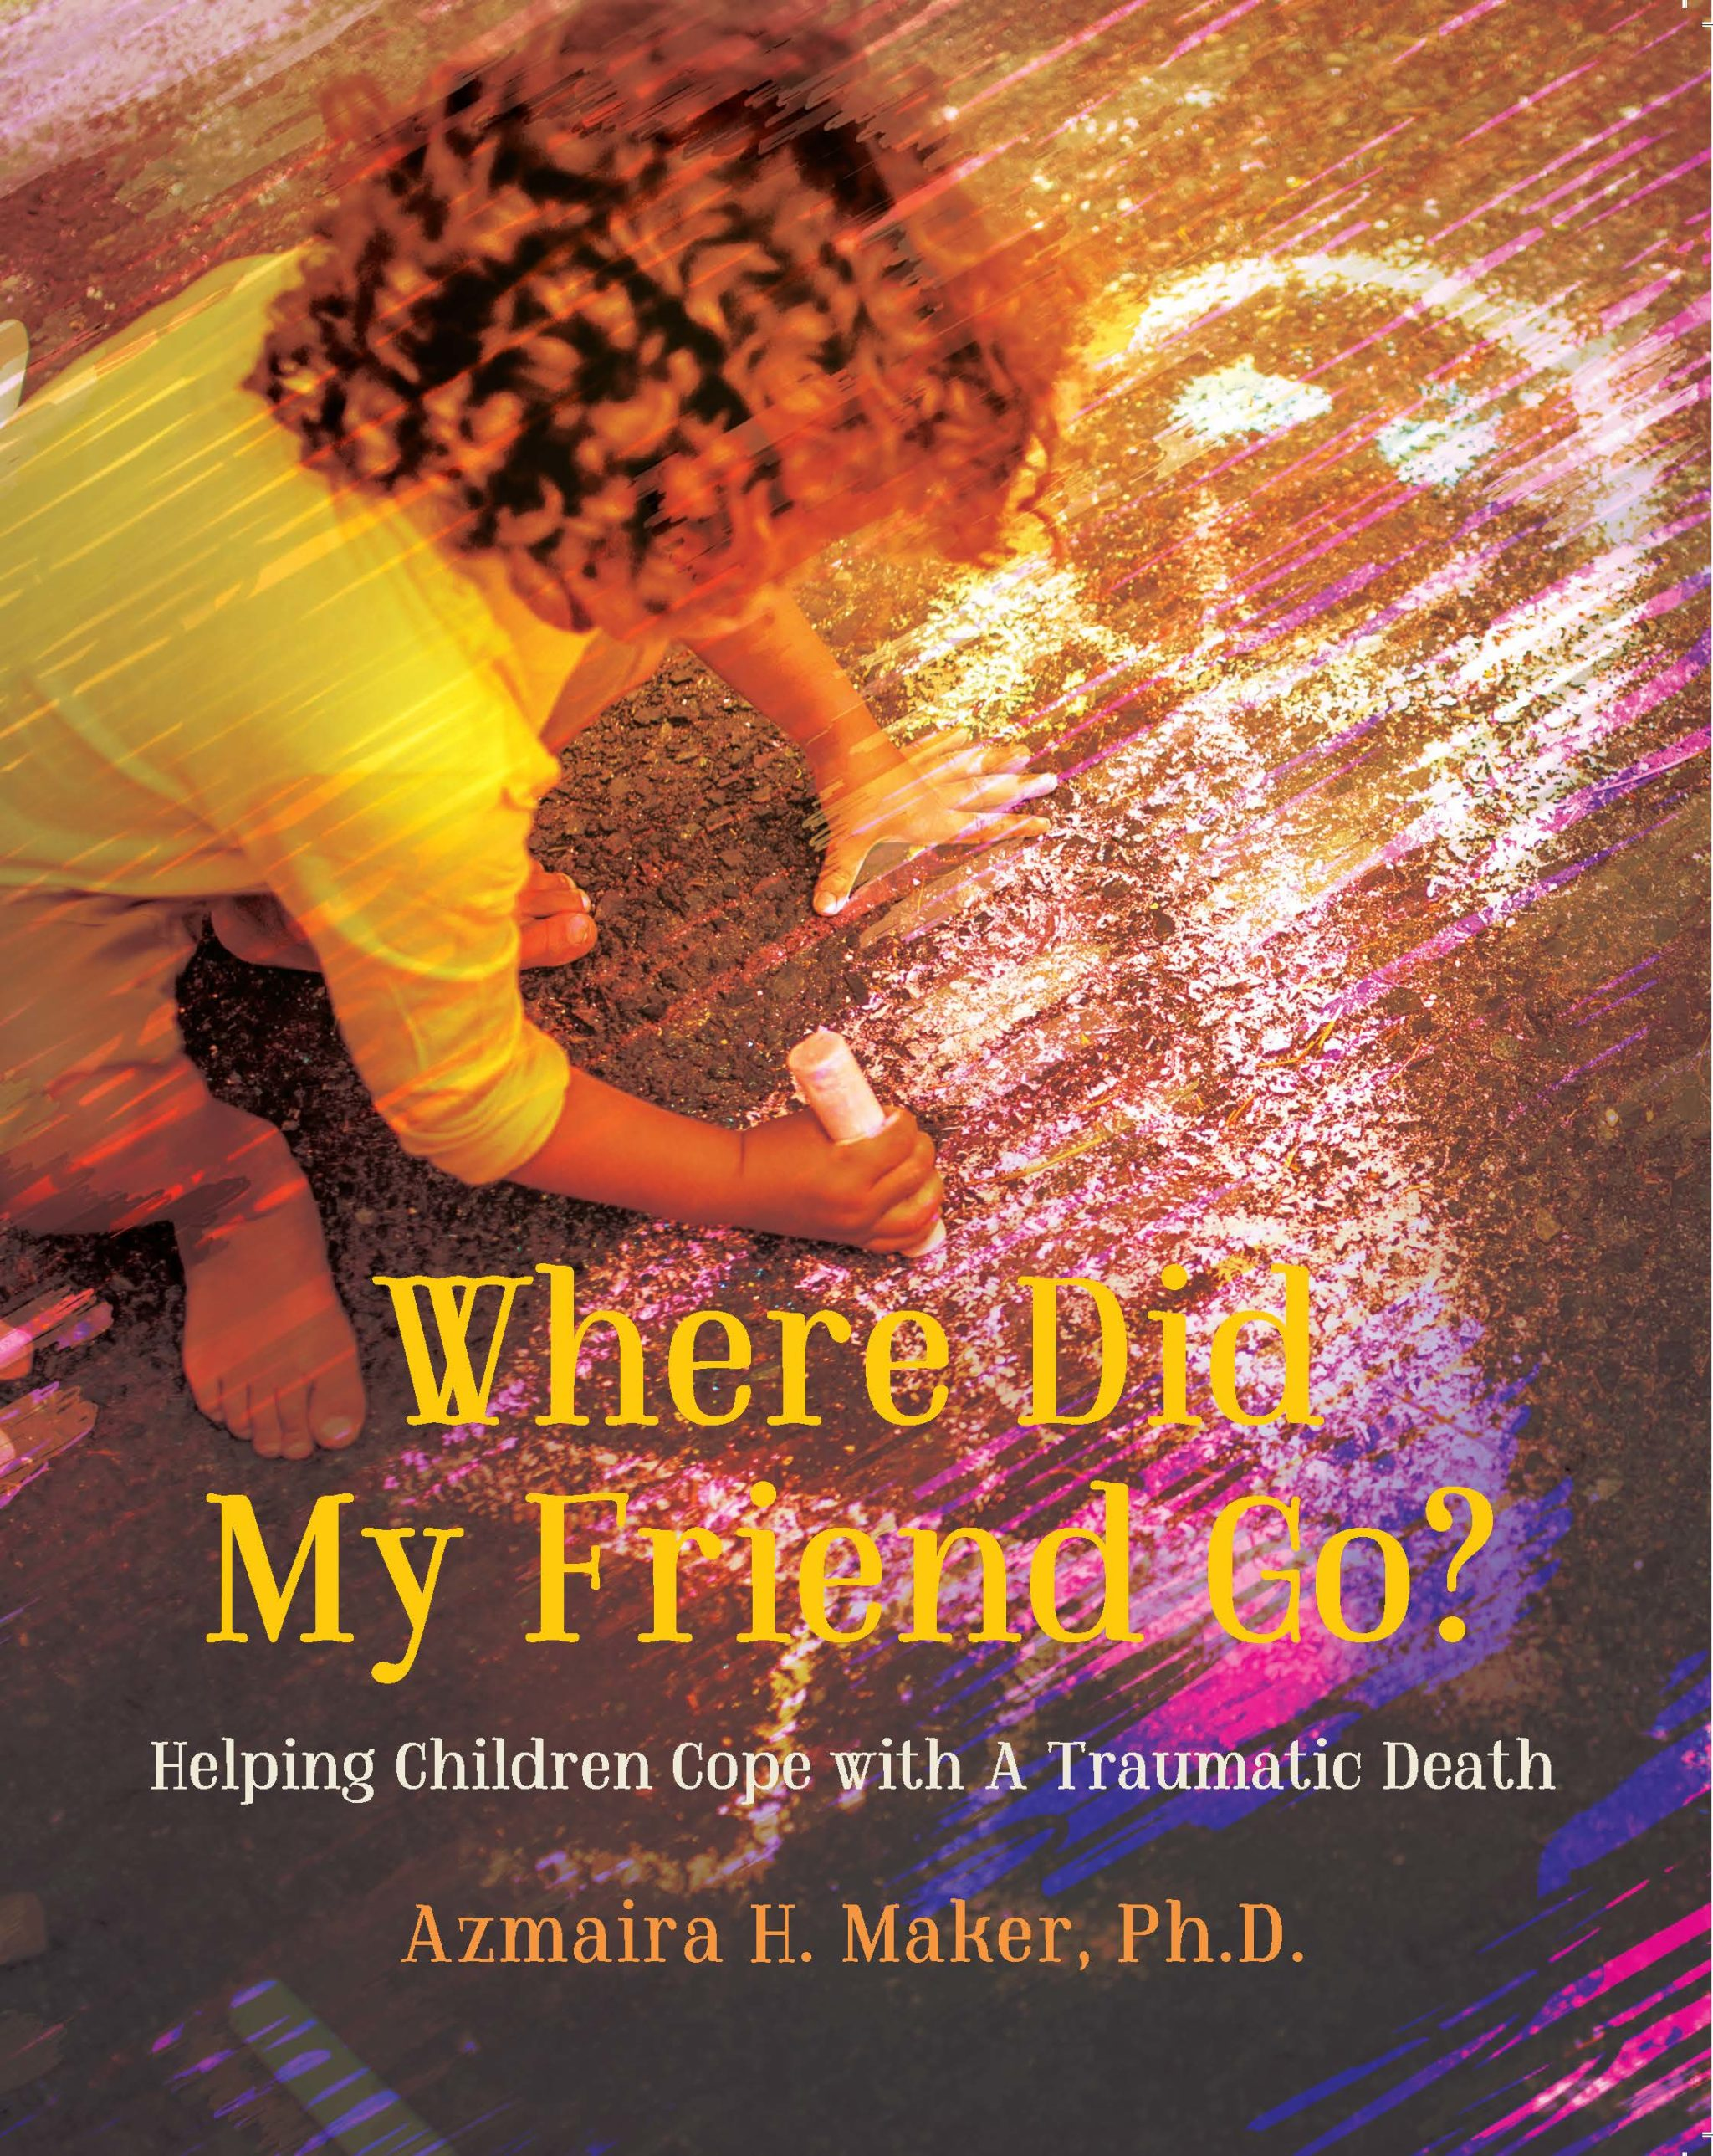 aspiring_Where Did My Friend Go? Wins 2017 Pinnacle Book Achievement Award